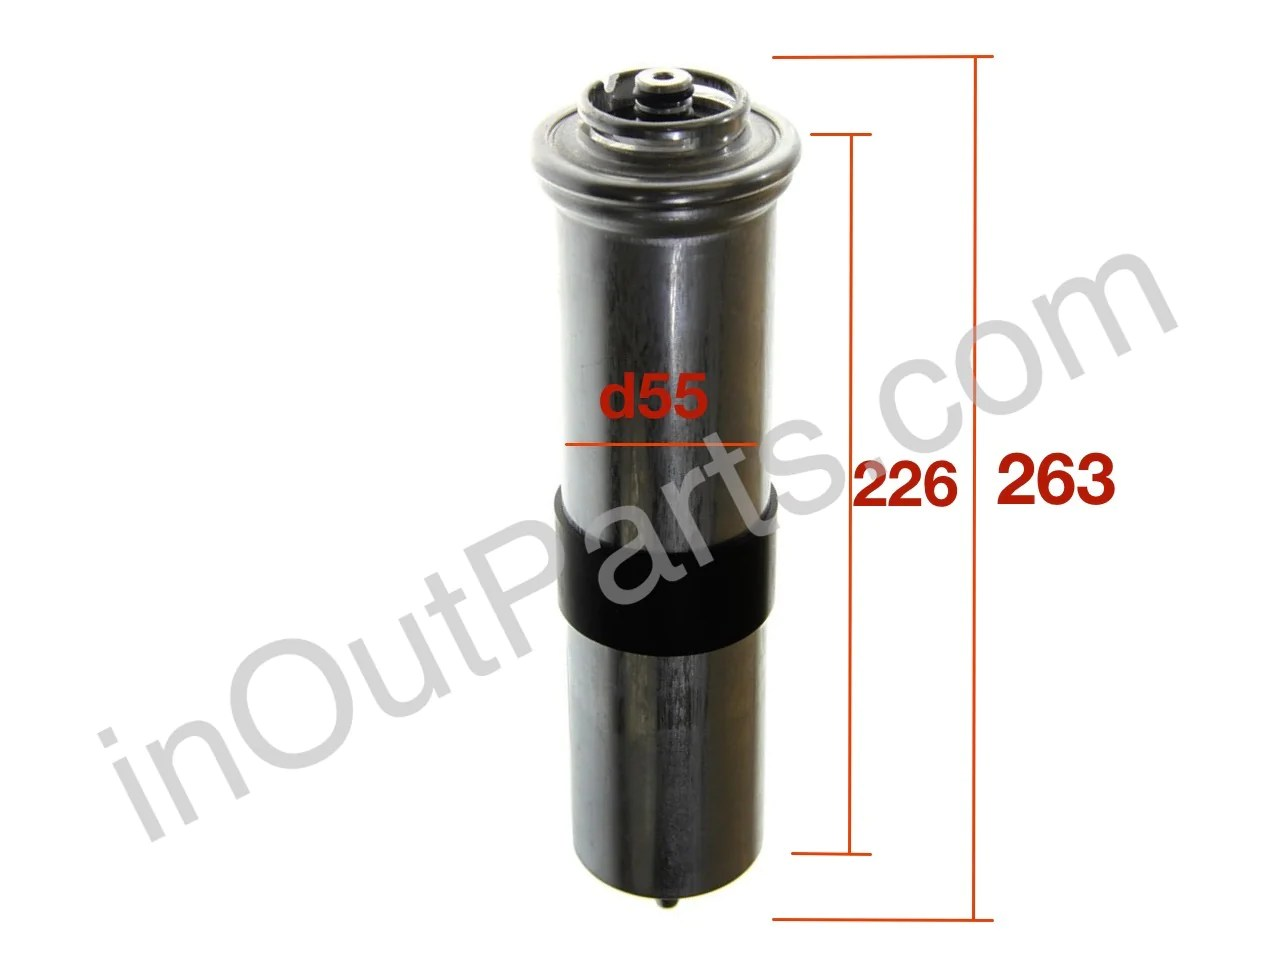 medium resolution of fuel filter fits bmw 3 series e90 2005 2013 x1 e84 2009 2016 x inout parts